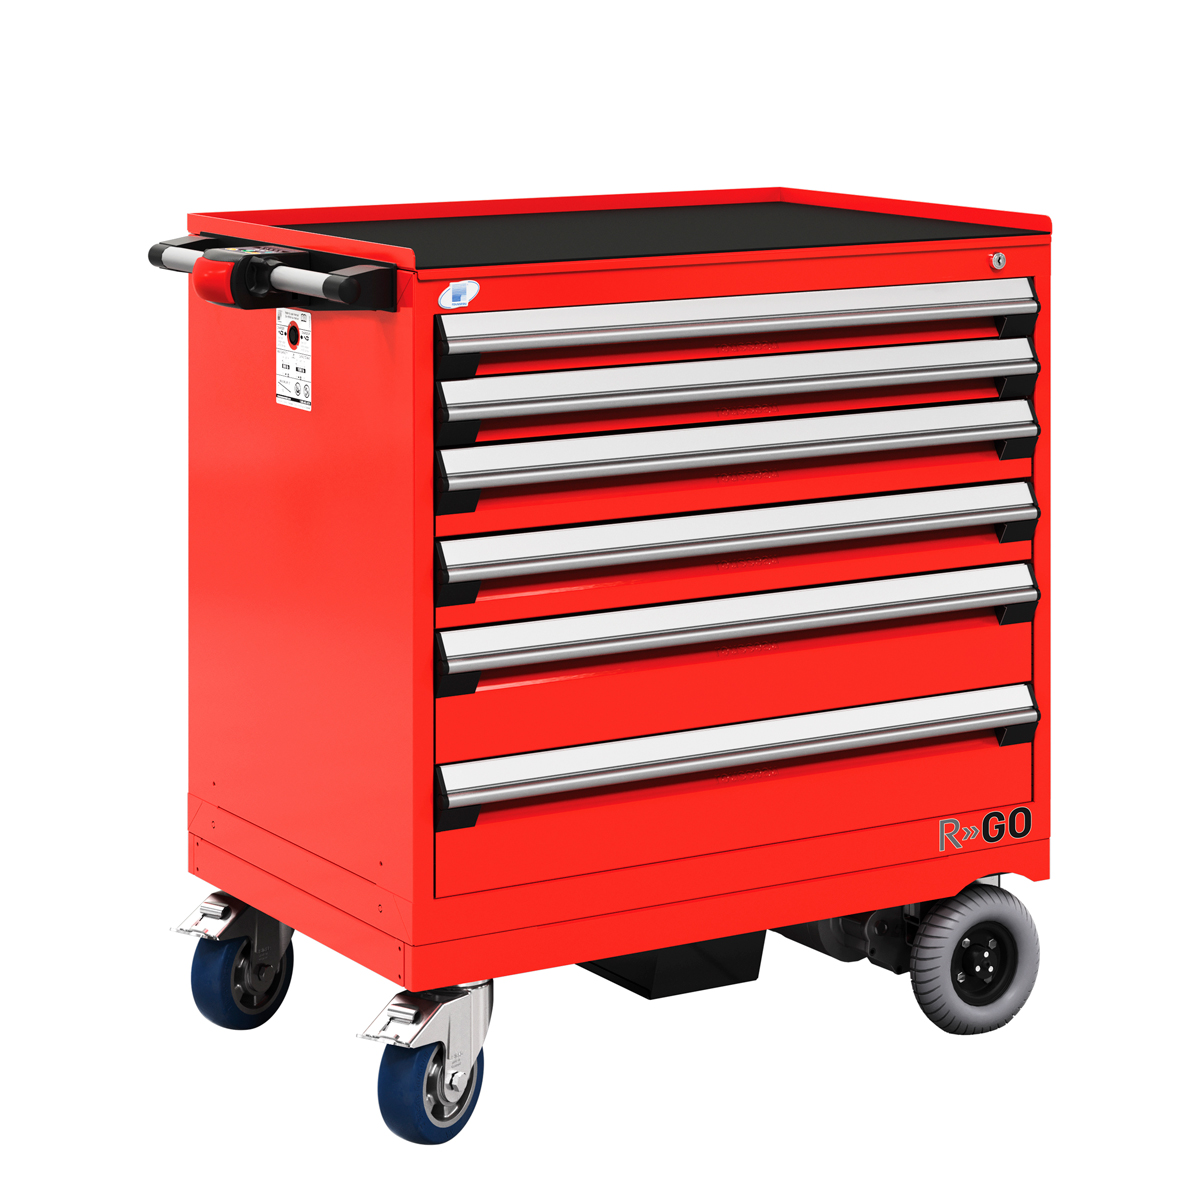 Rousseau_R-Go_Motorized-Toolbox_R7BEE-30501L3